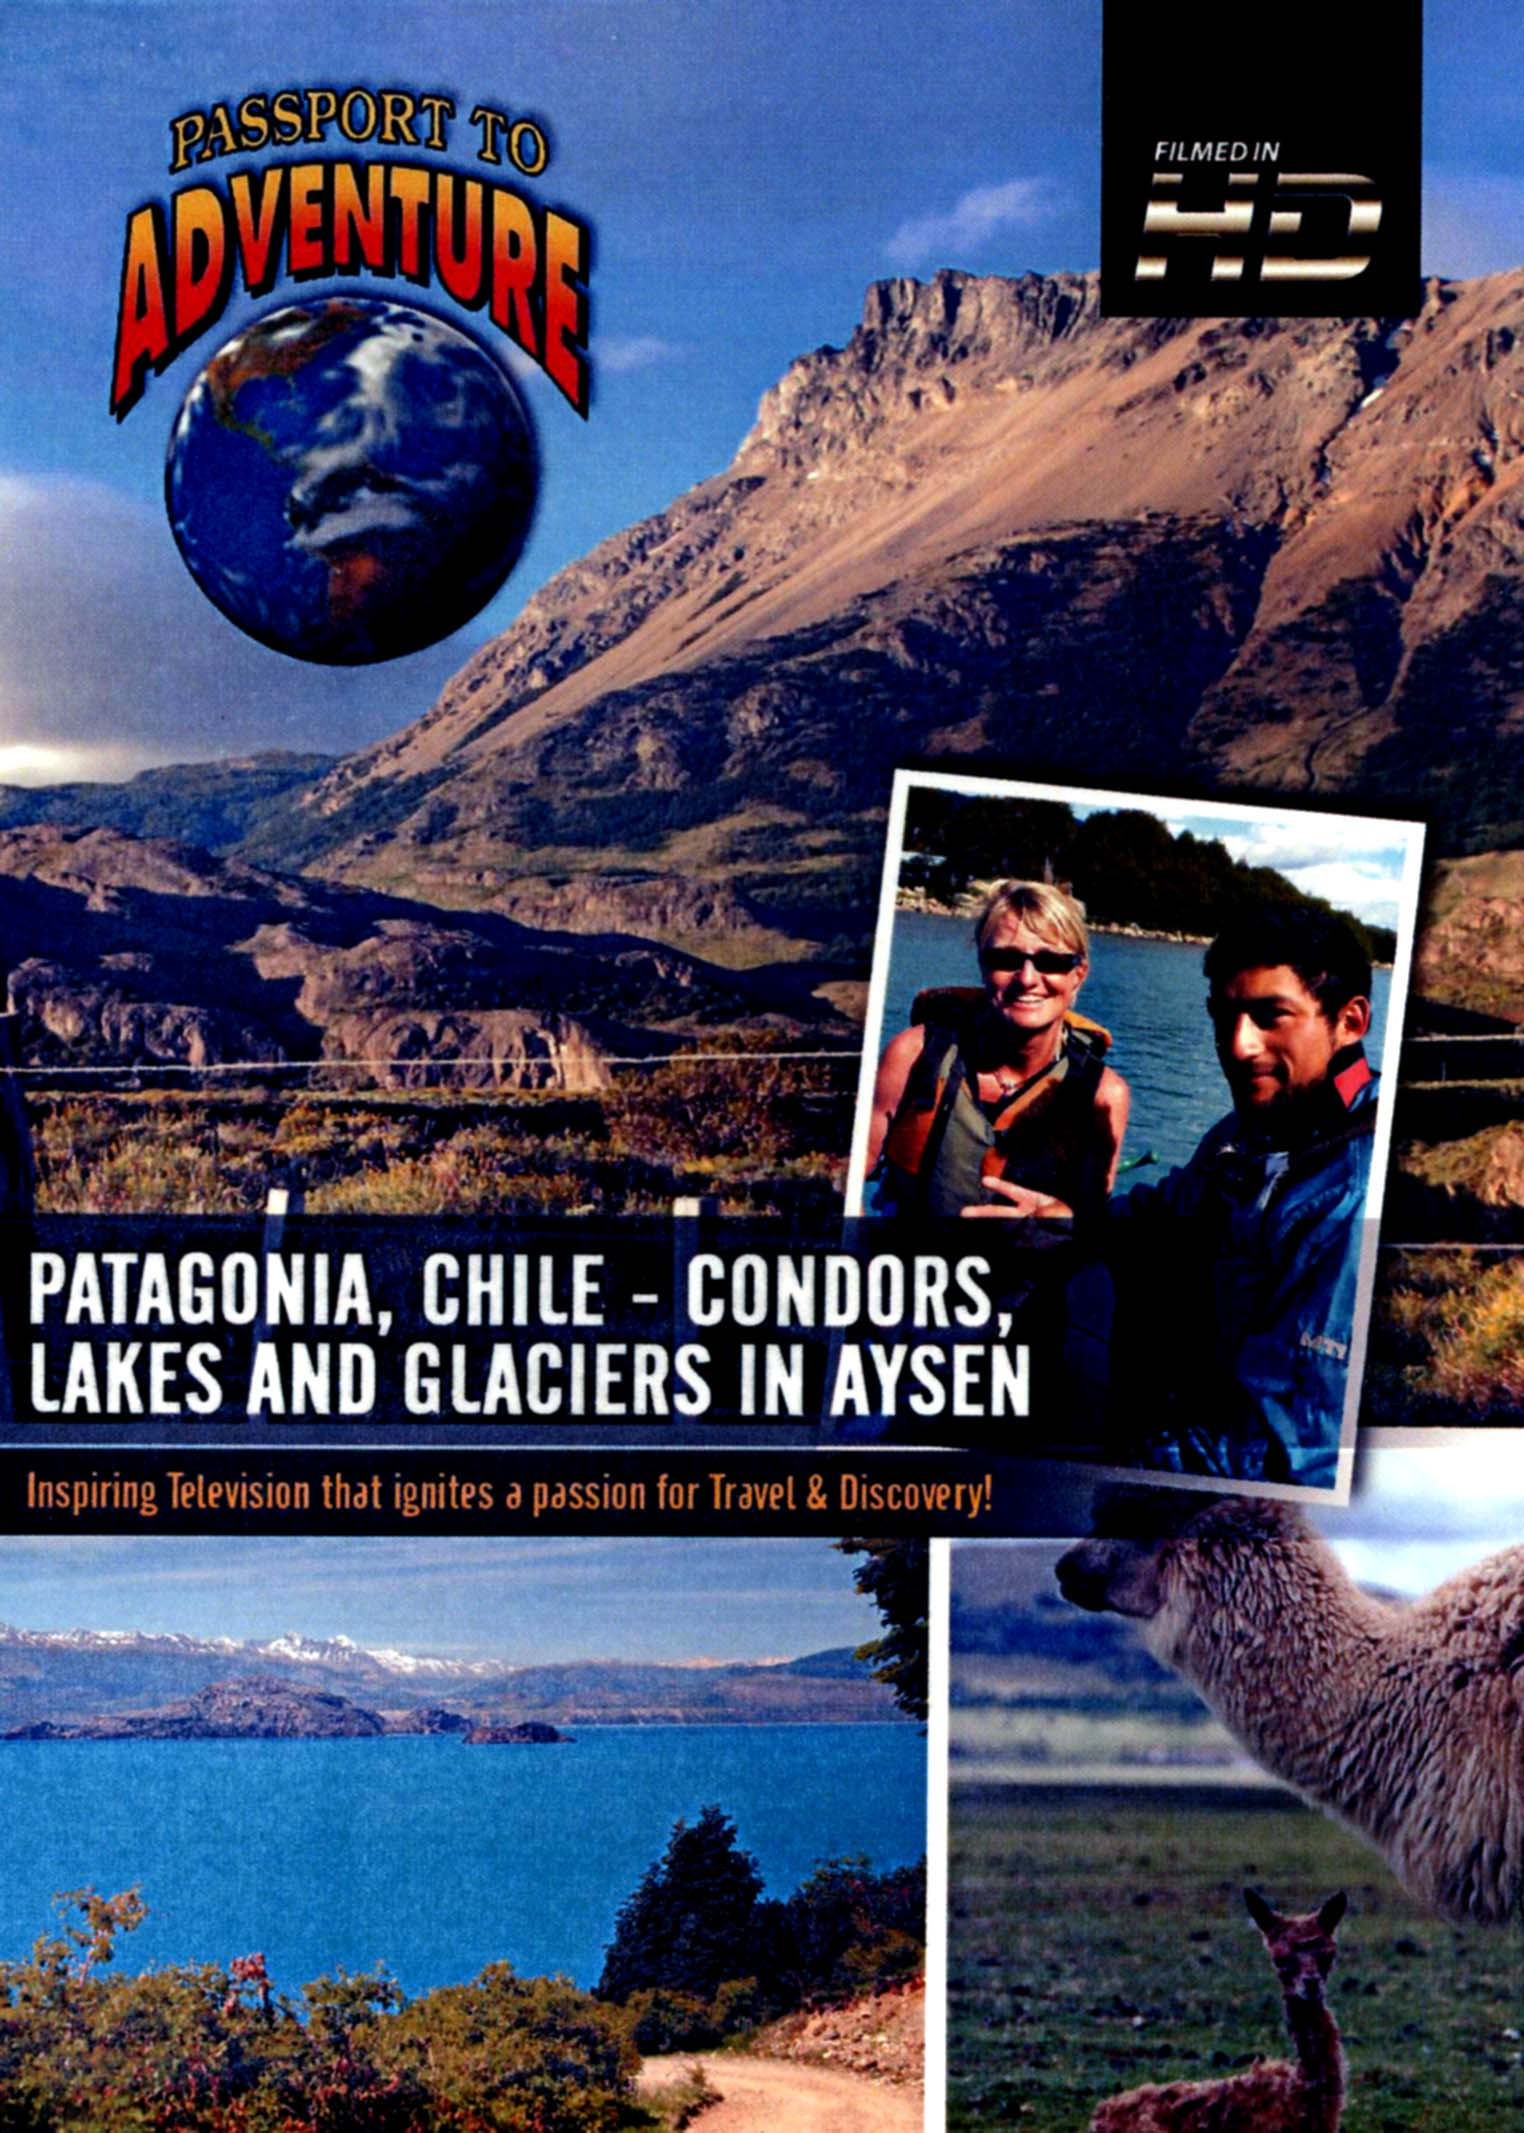 Passport to Adventure: Patagonia, Chile - Condors, Lakes and Glaciers in Aysen